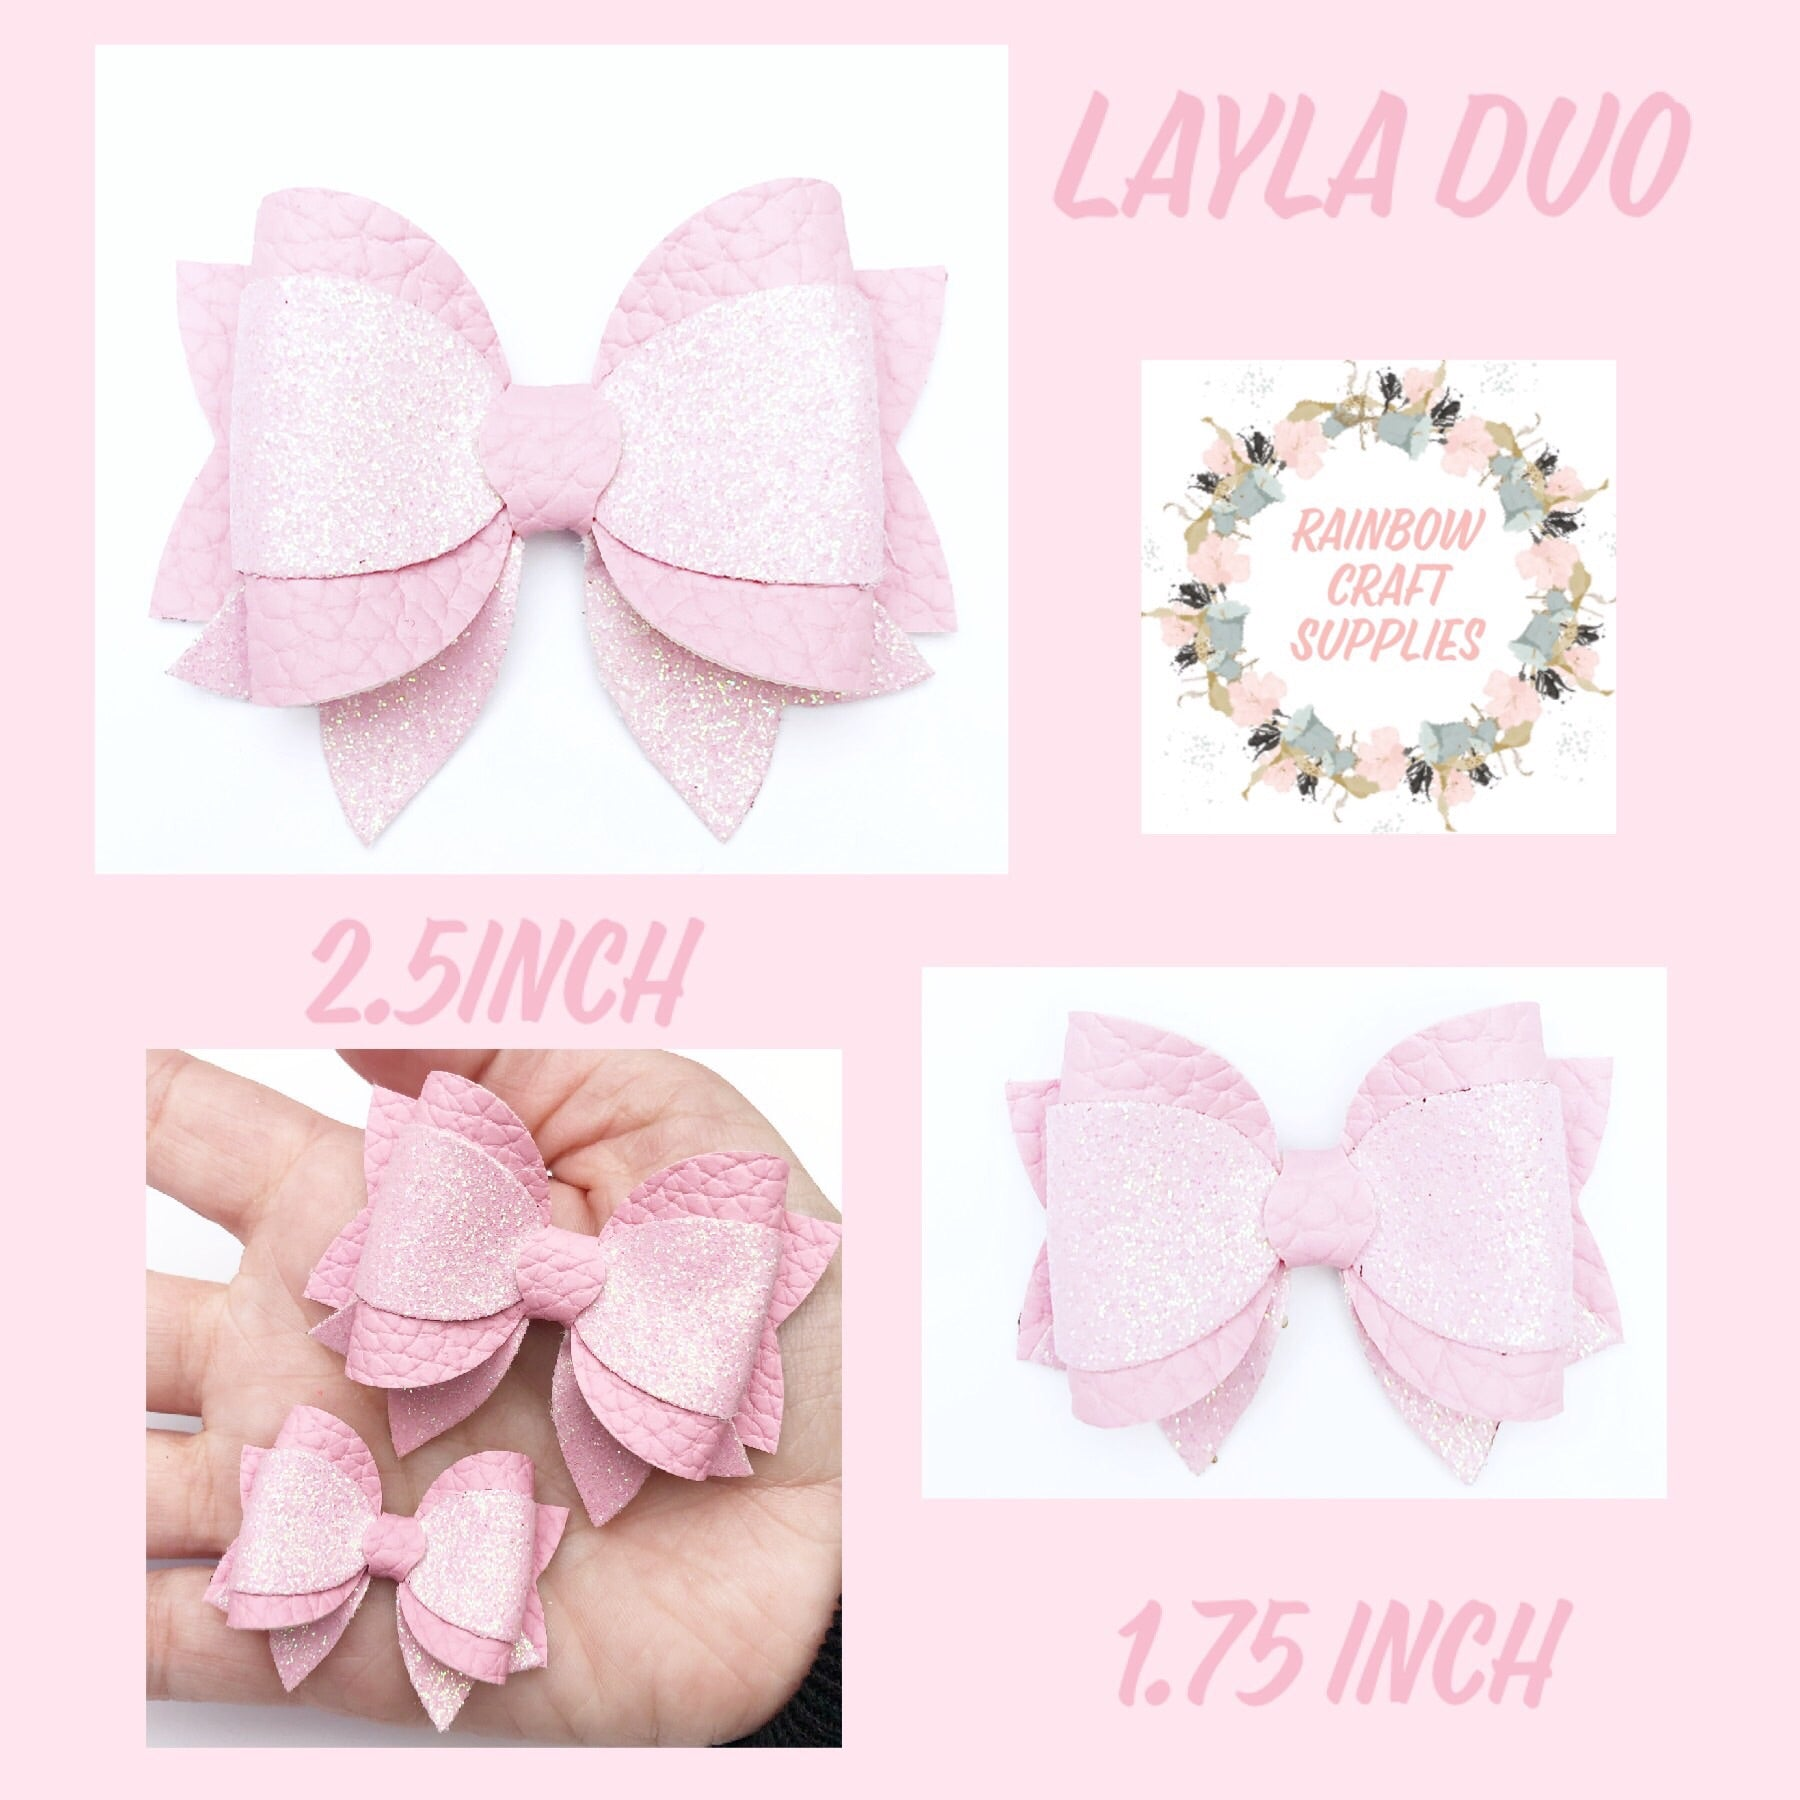 Layla duo plastic template